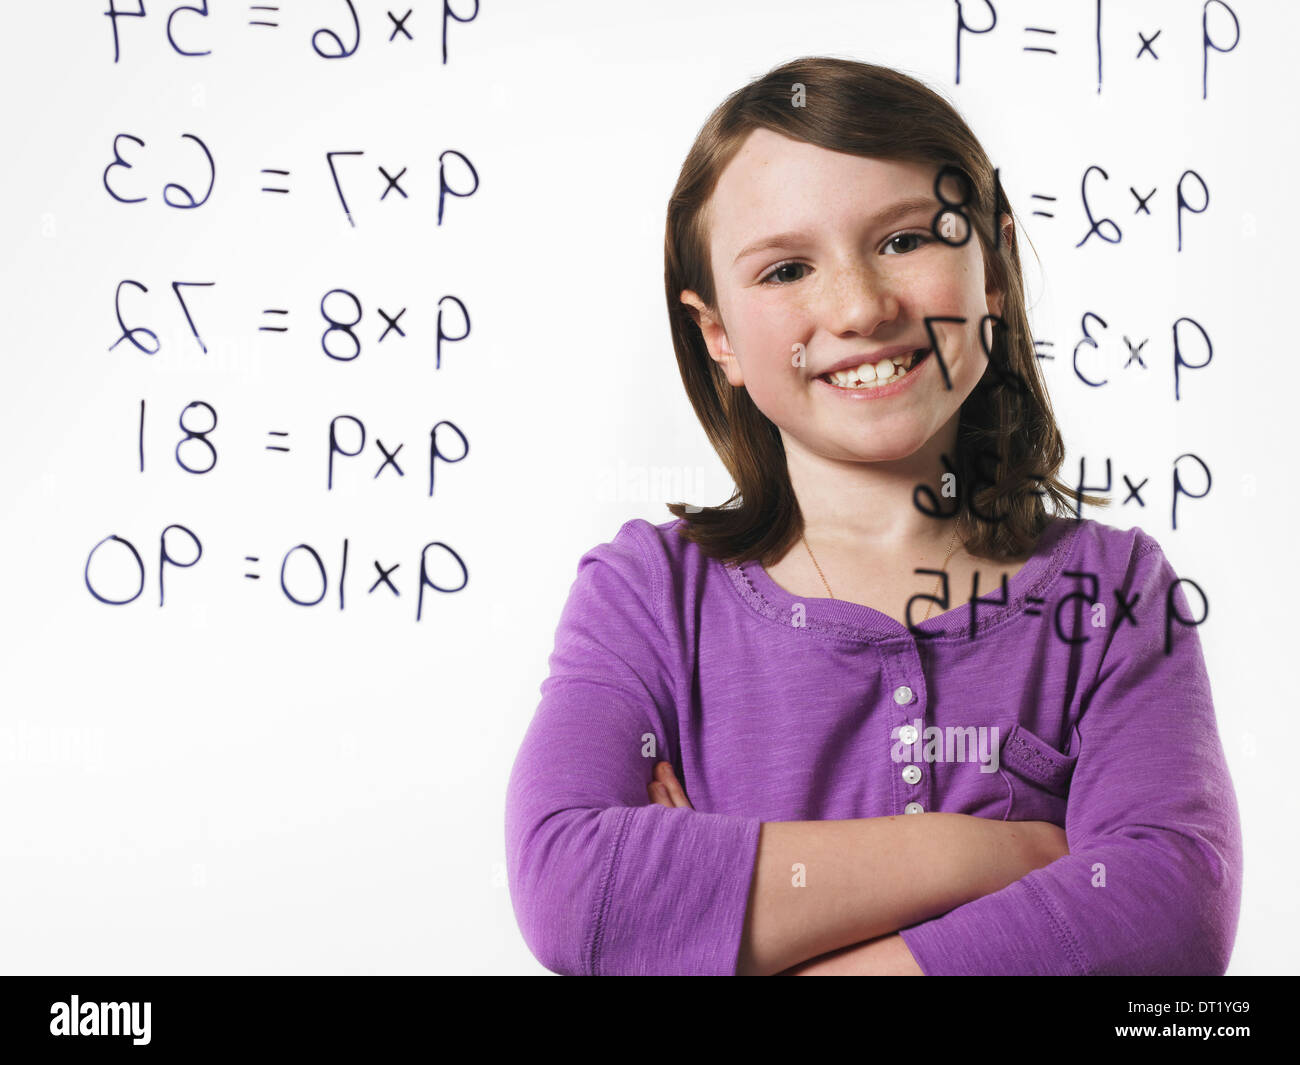 A child looking at a series of multiplication tables written on a see through surface - Stock Image